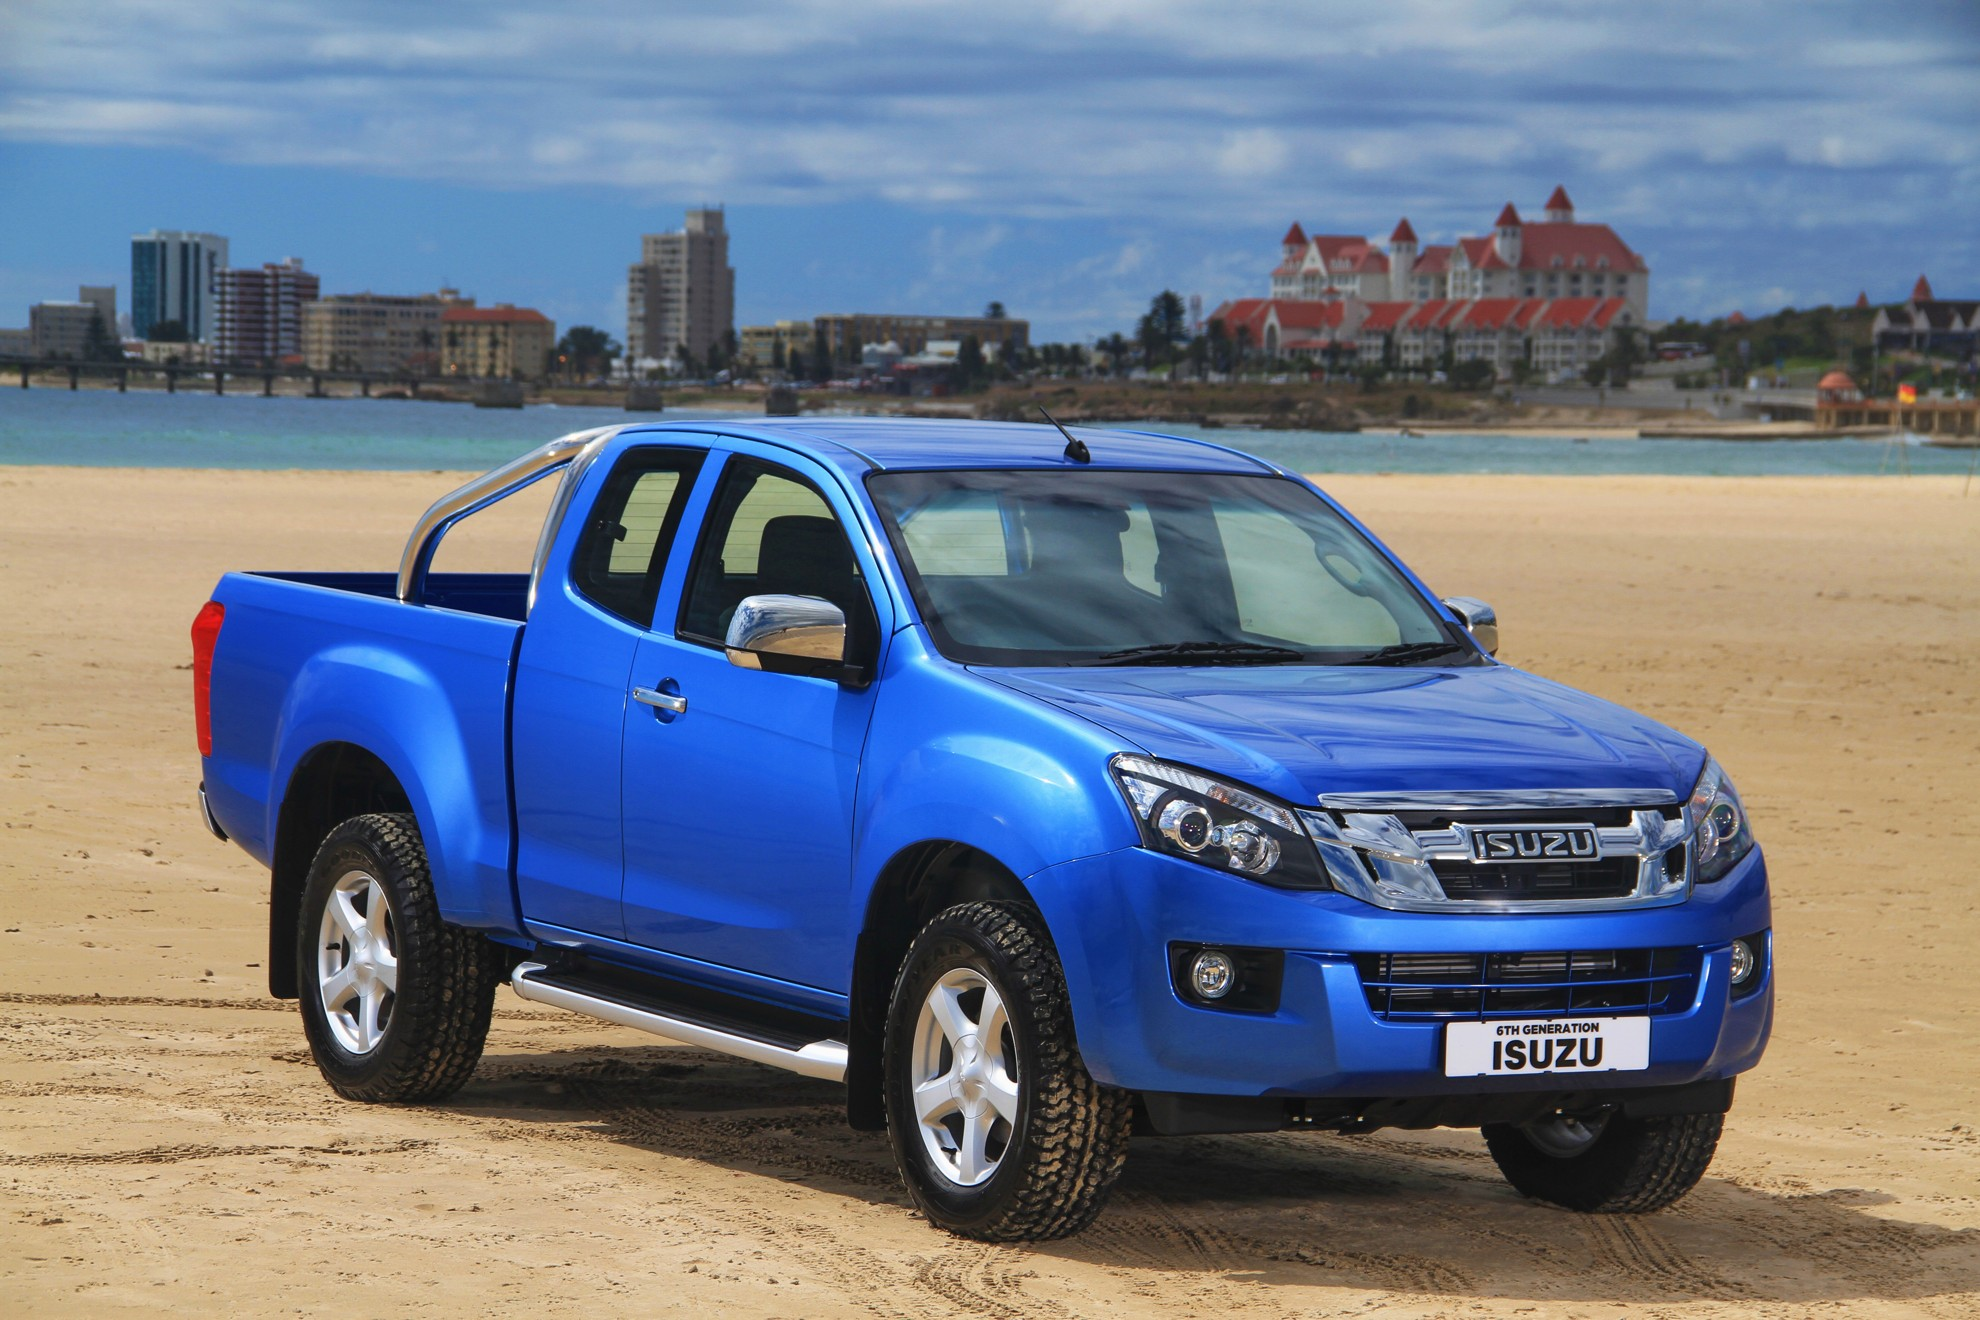 new isuzu kb tailored locally for real tough south africans isuzu